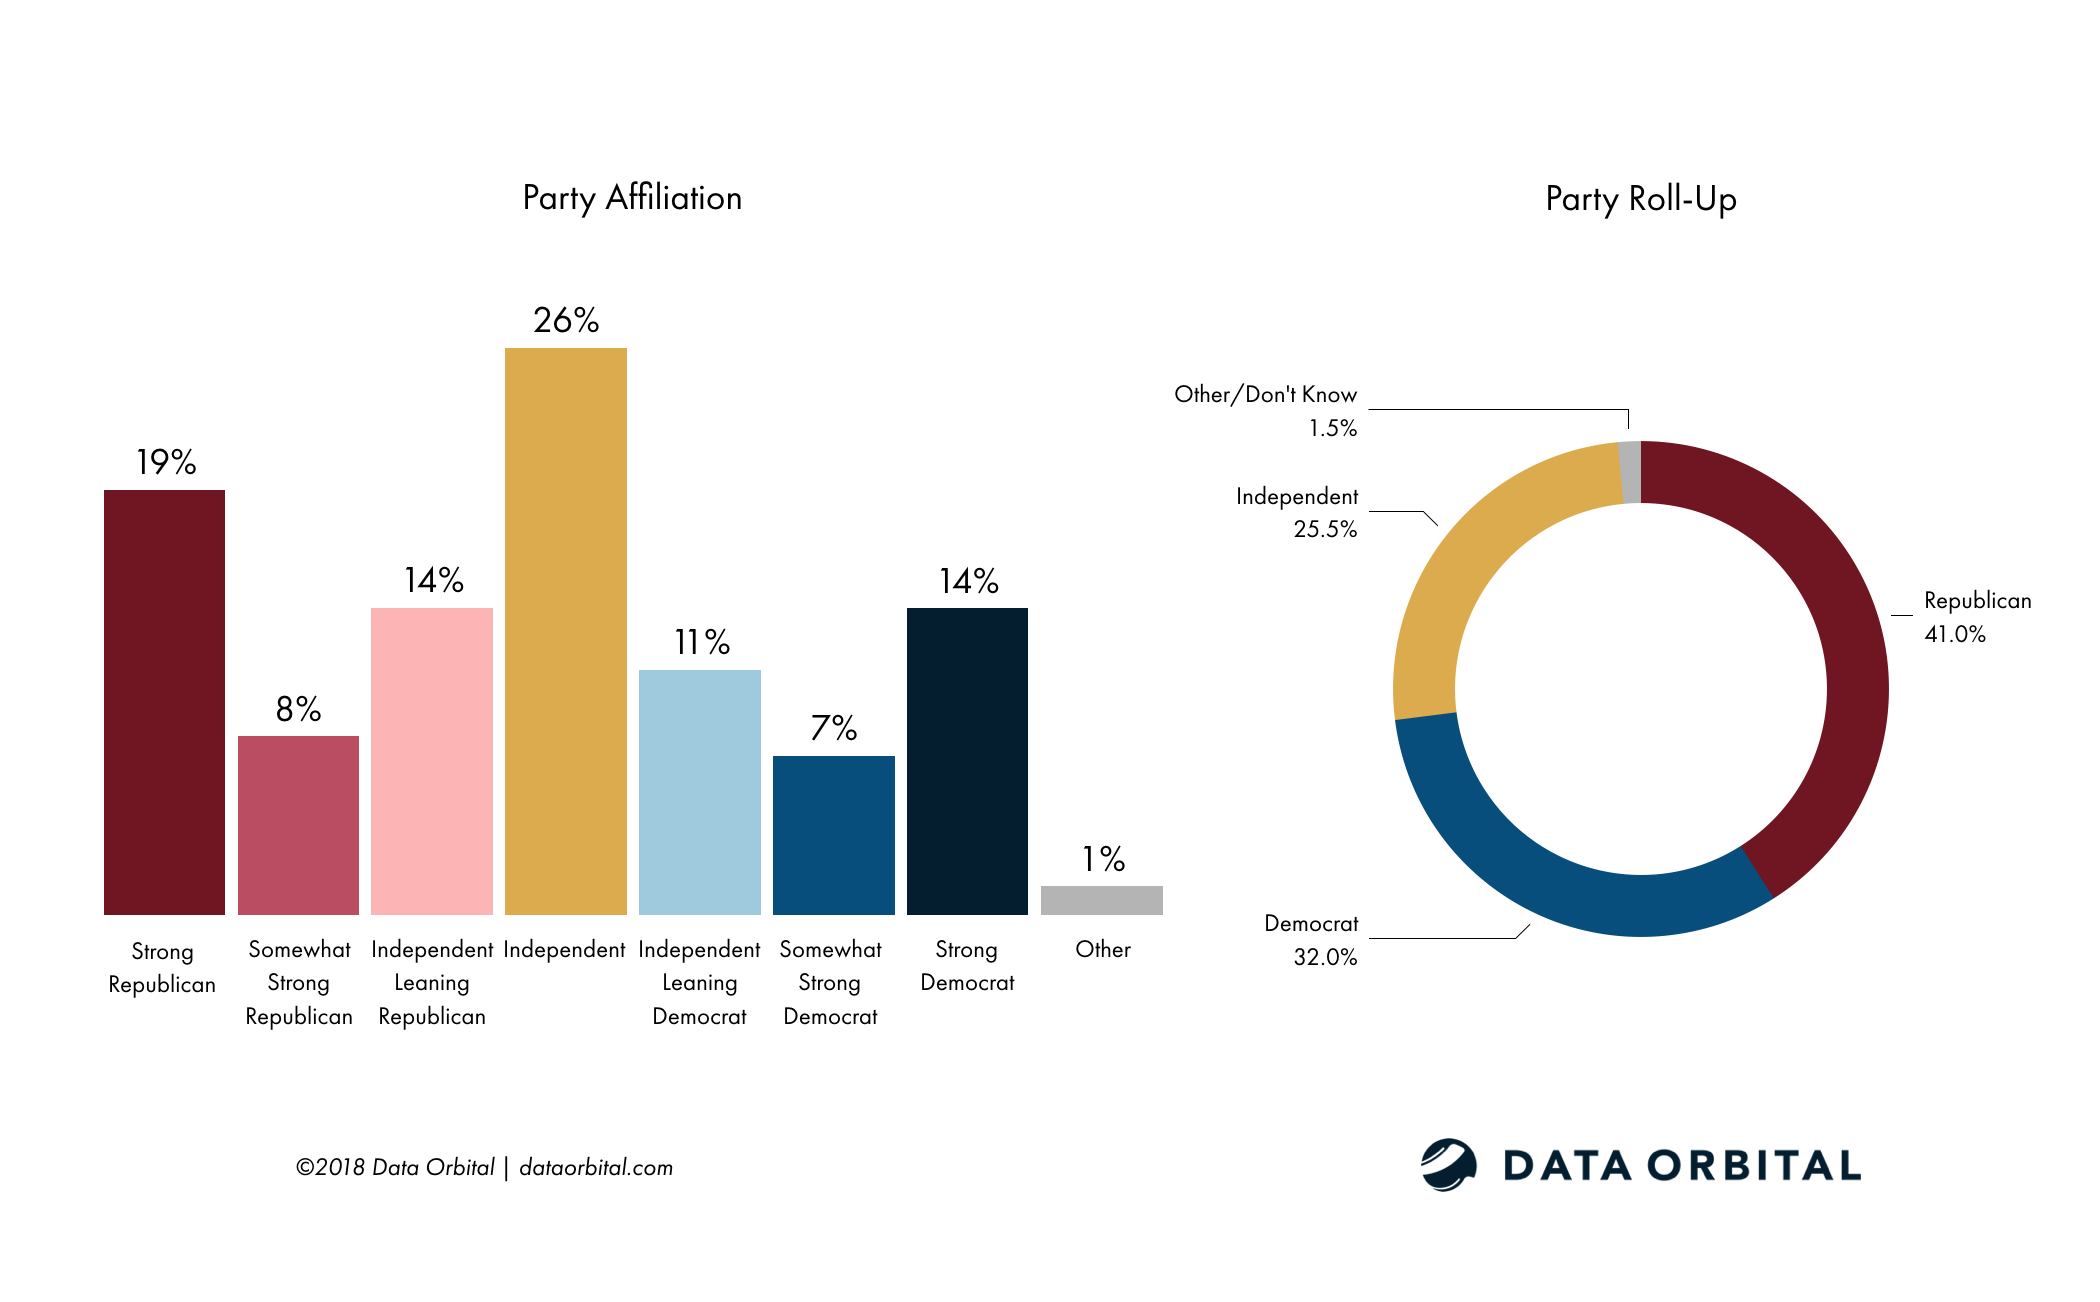 Data Orbital AZ Statewide Poll Demographics - Party Affiliation and Roll-Up